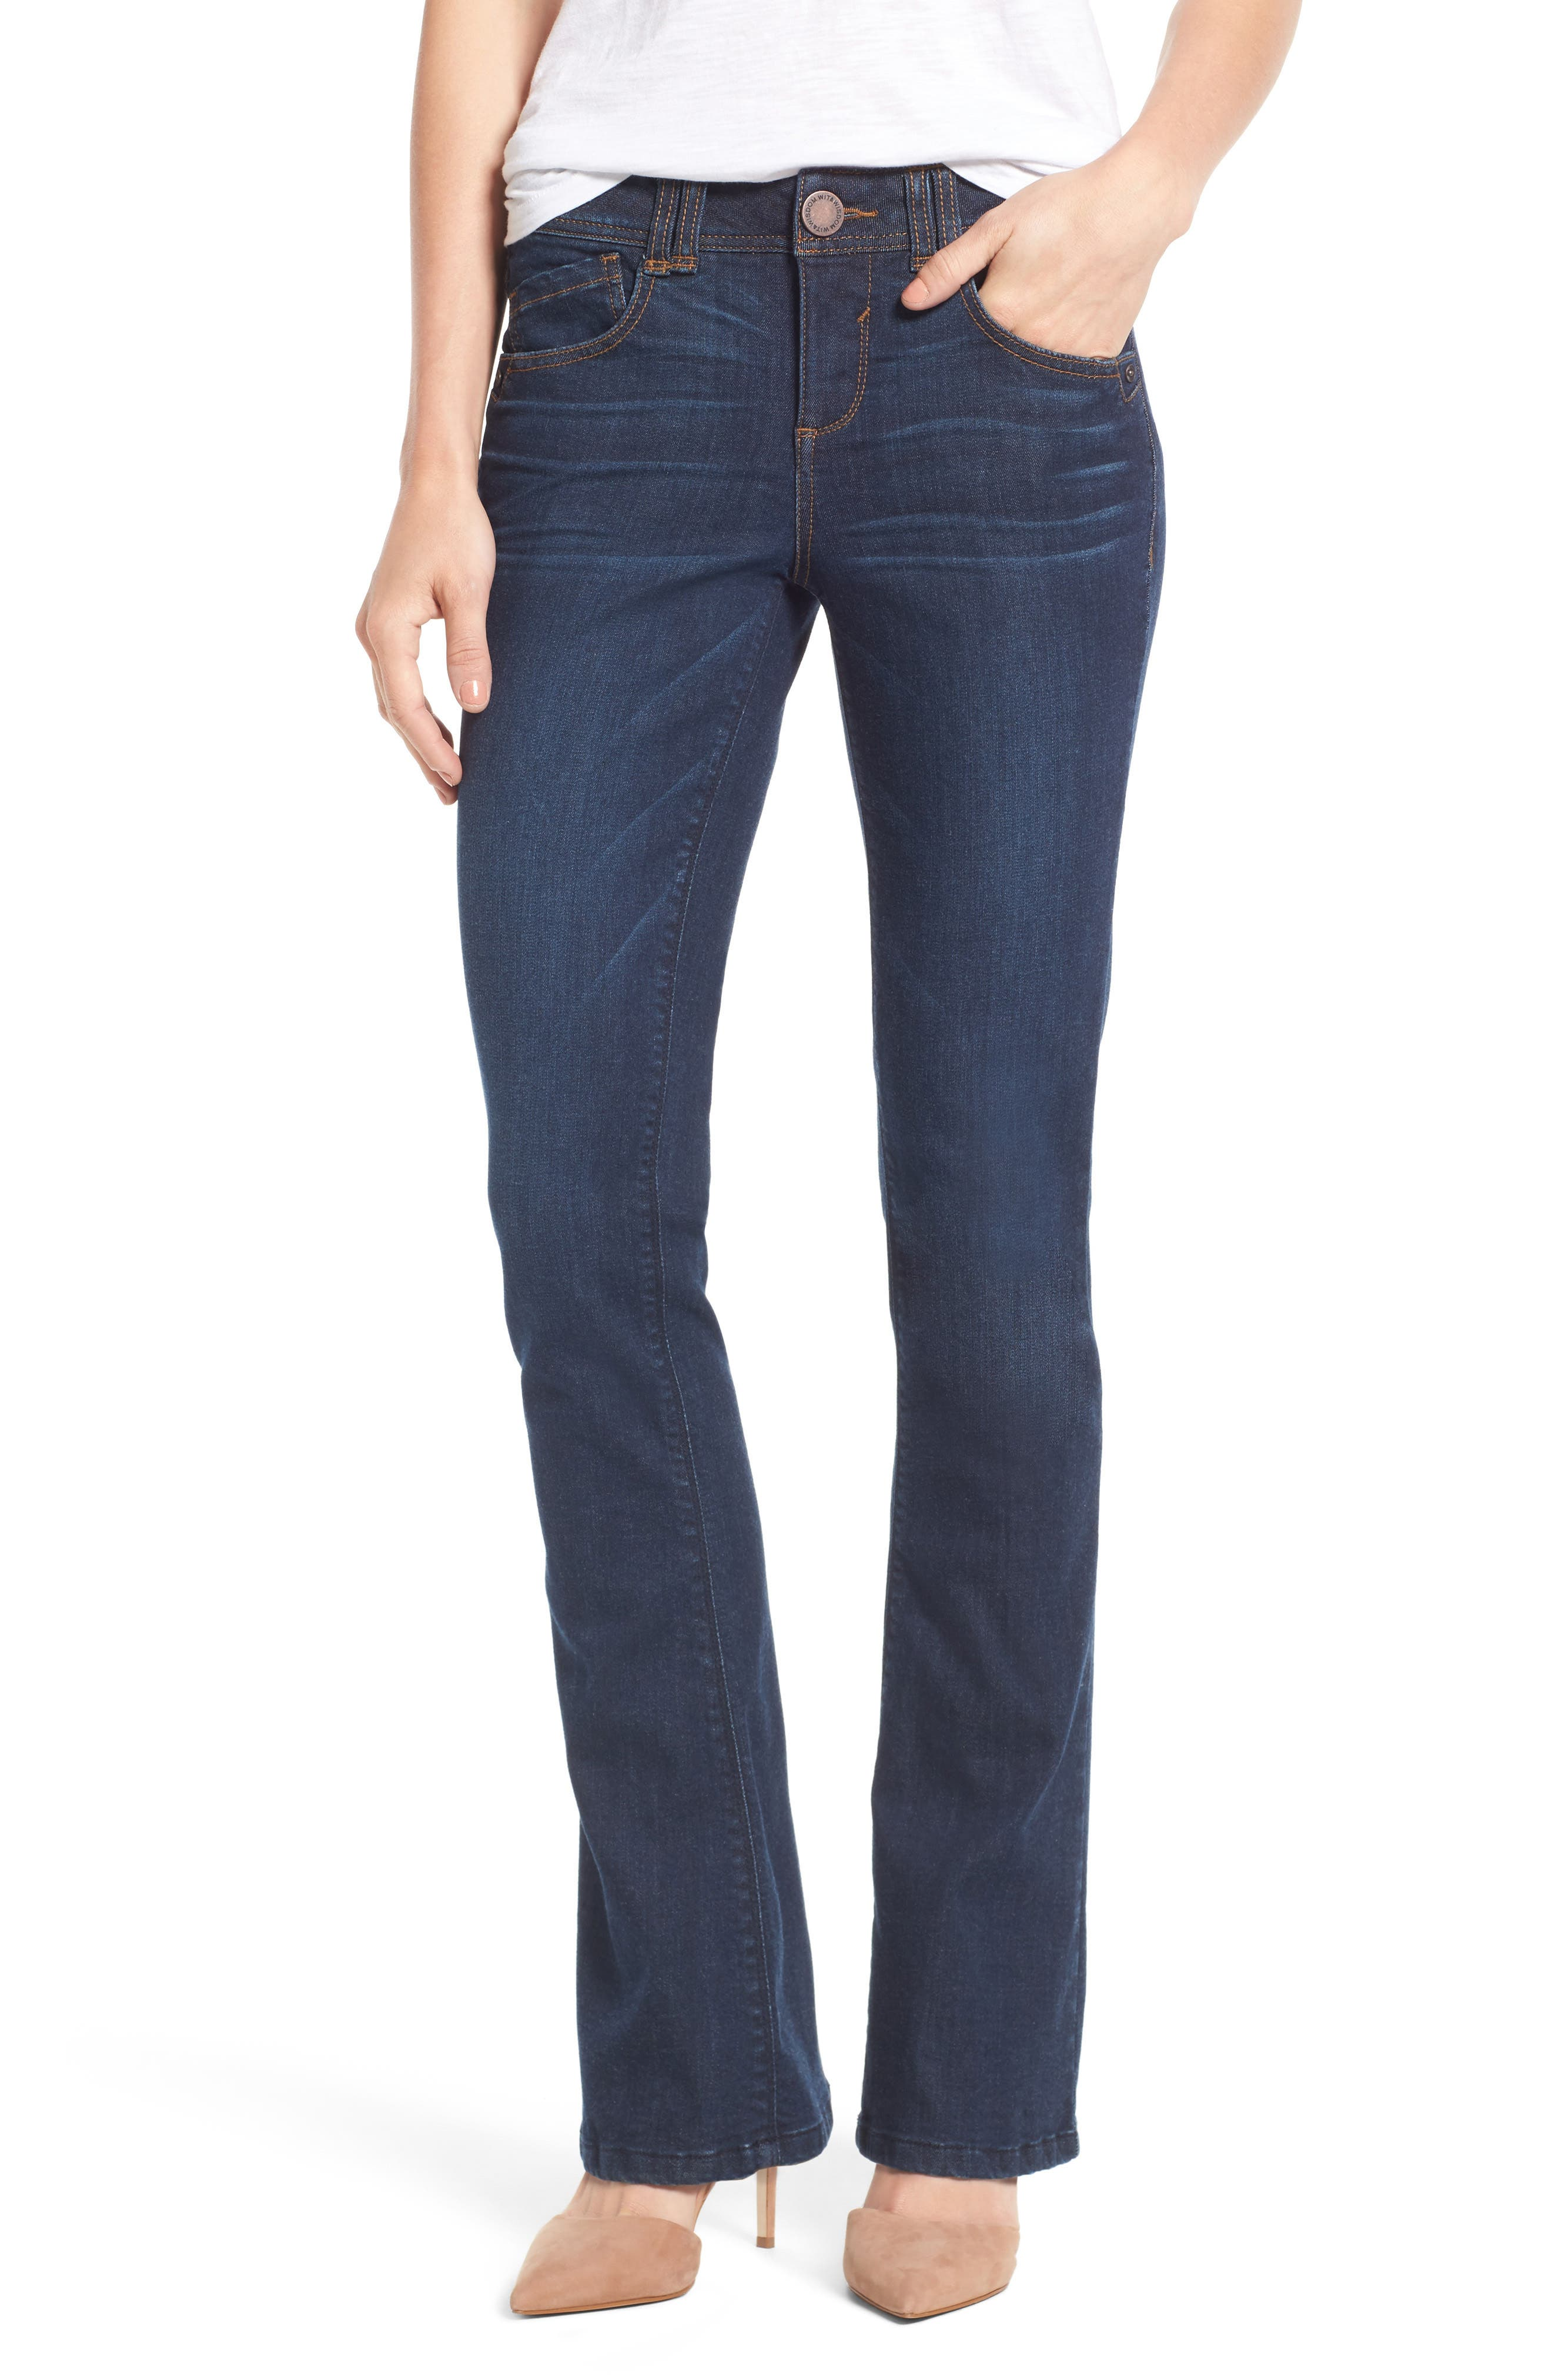 Ab-solution Itty Bitty Bootcut Petite Jeans WIT & WISDOM (Nordstrom) $45.56